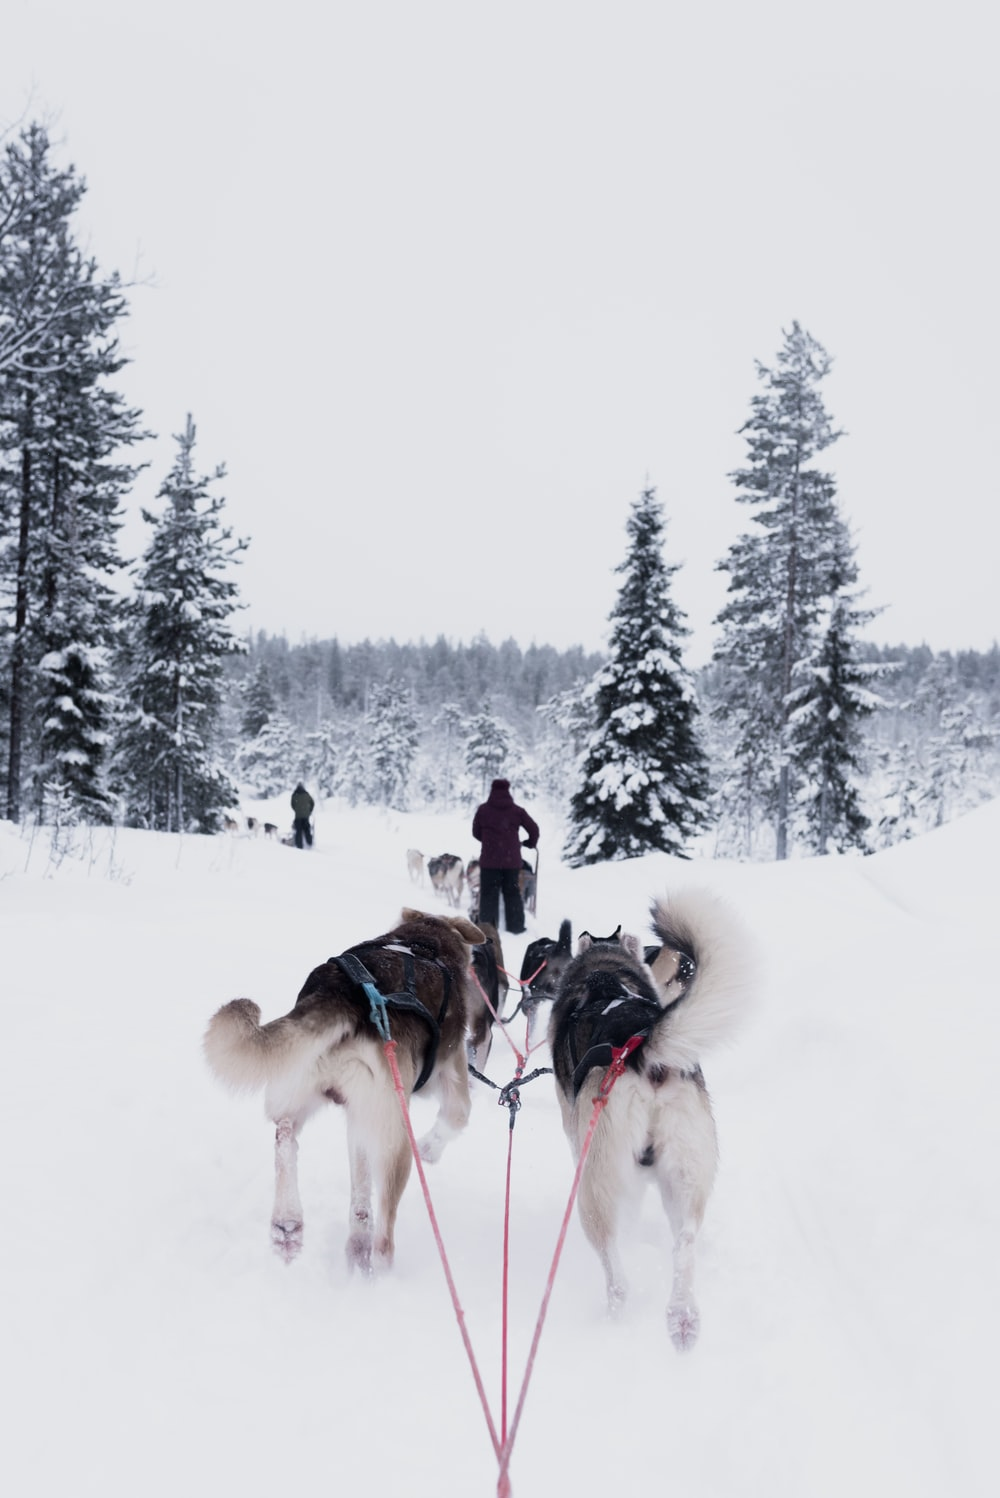 dogs pulling person on snow